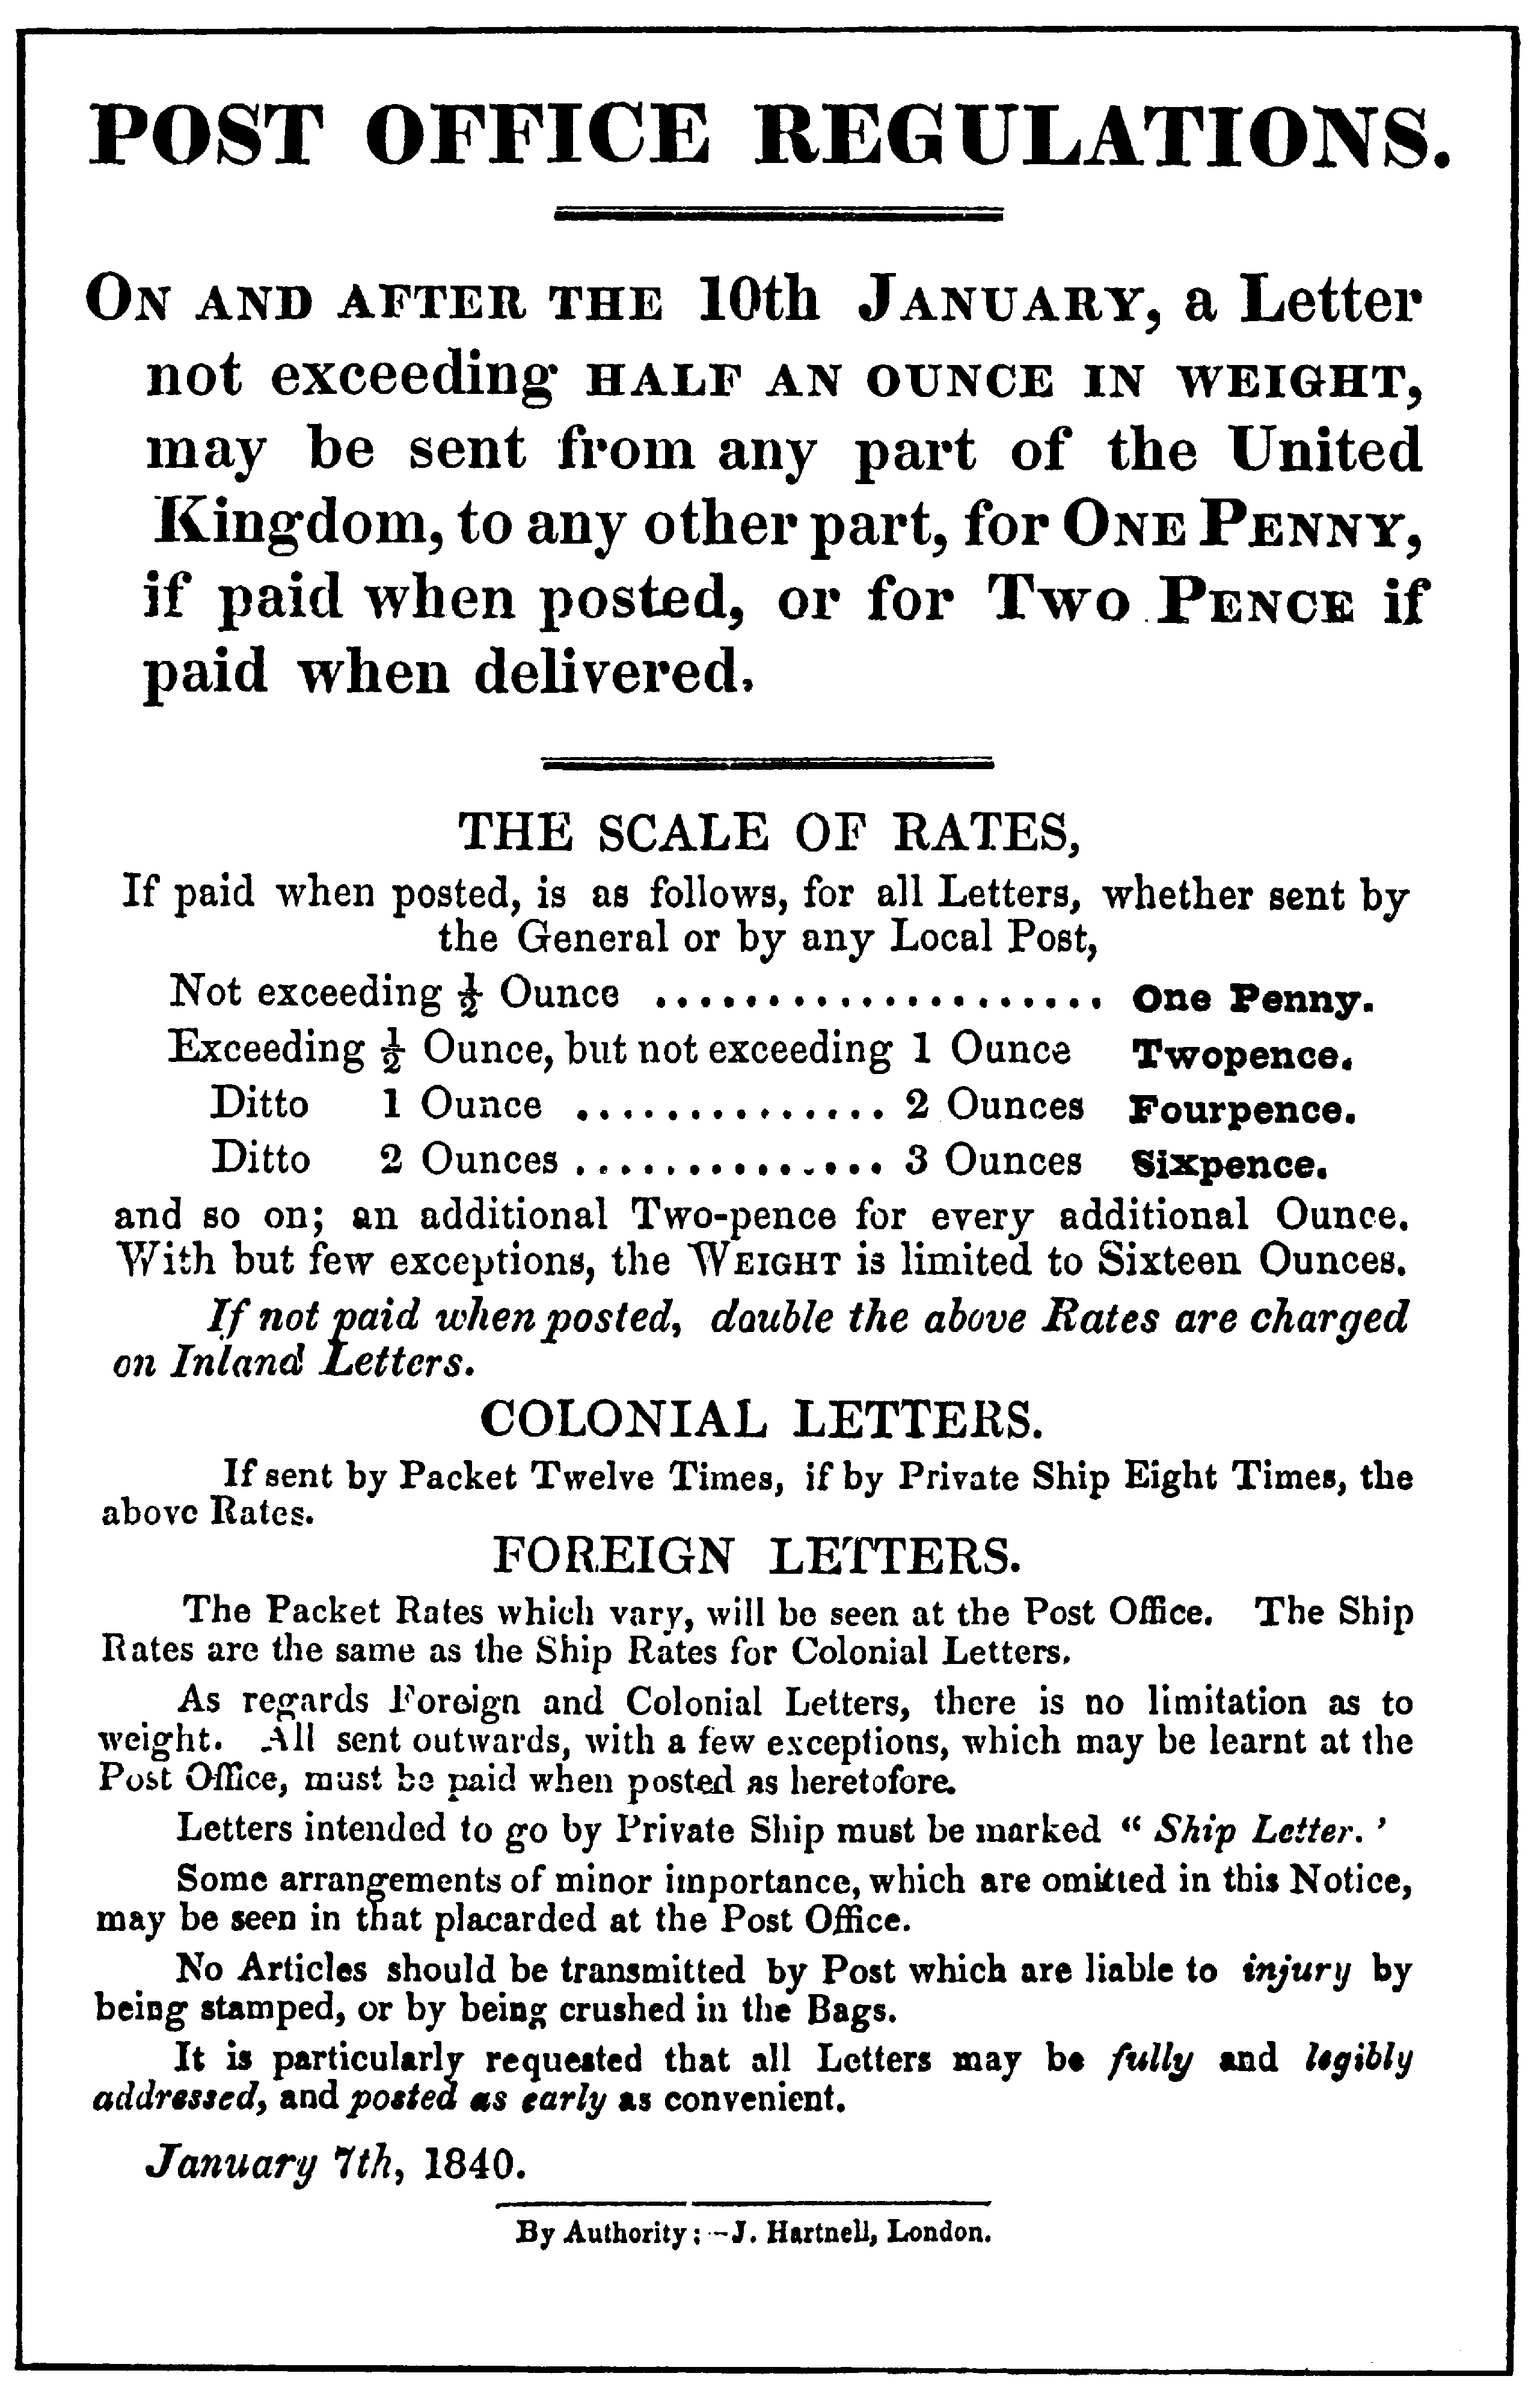 Post Office Regulations handbill giving details of the Uniform Penny Post, dated January 7, 1840.